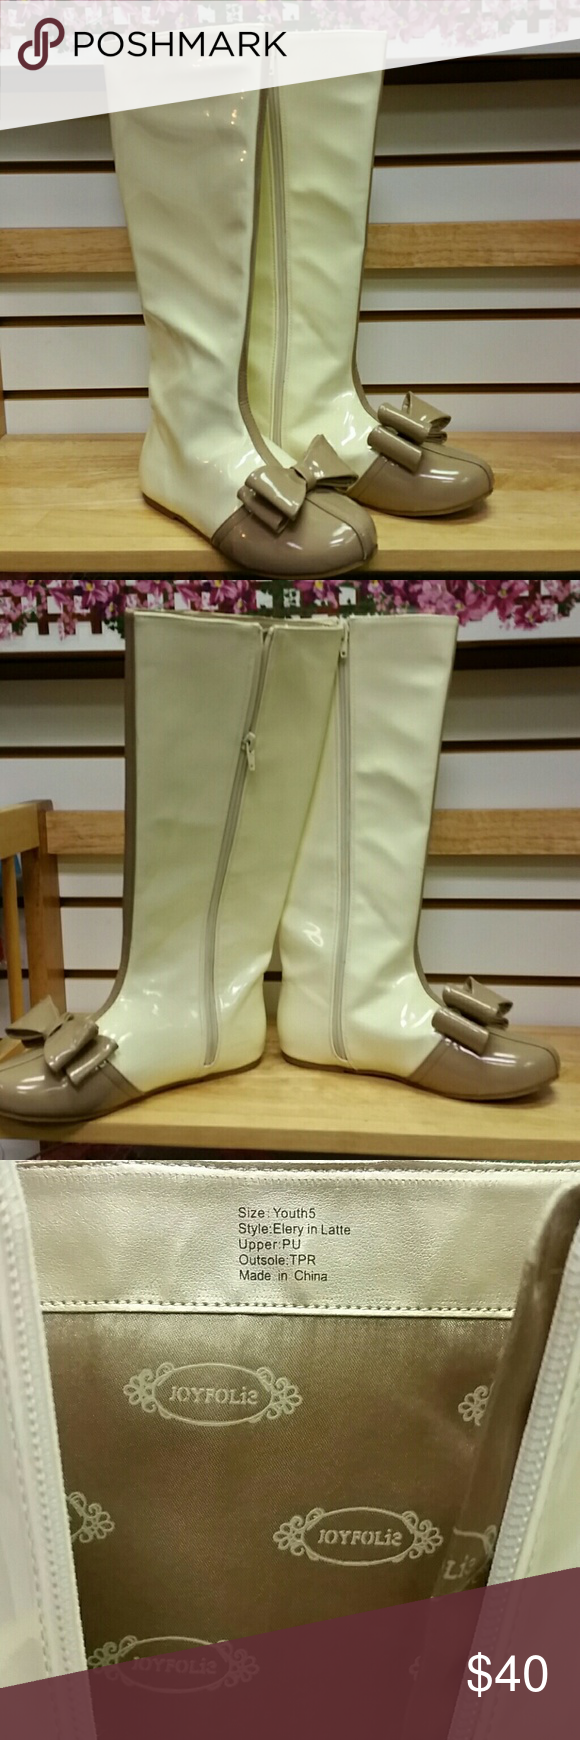 Joyfolie boots sz 5 youth = 6 1/2 - 7 womens Almost knee high boots depending on height. Vguc joyfolie Shoes Boots